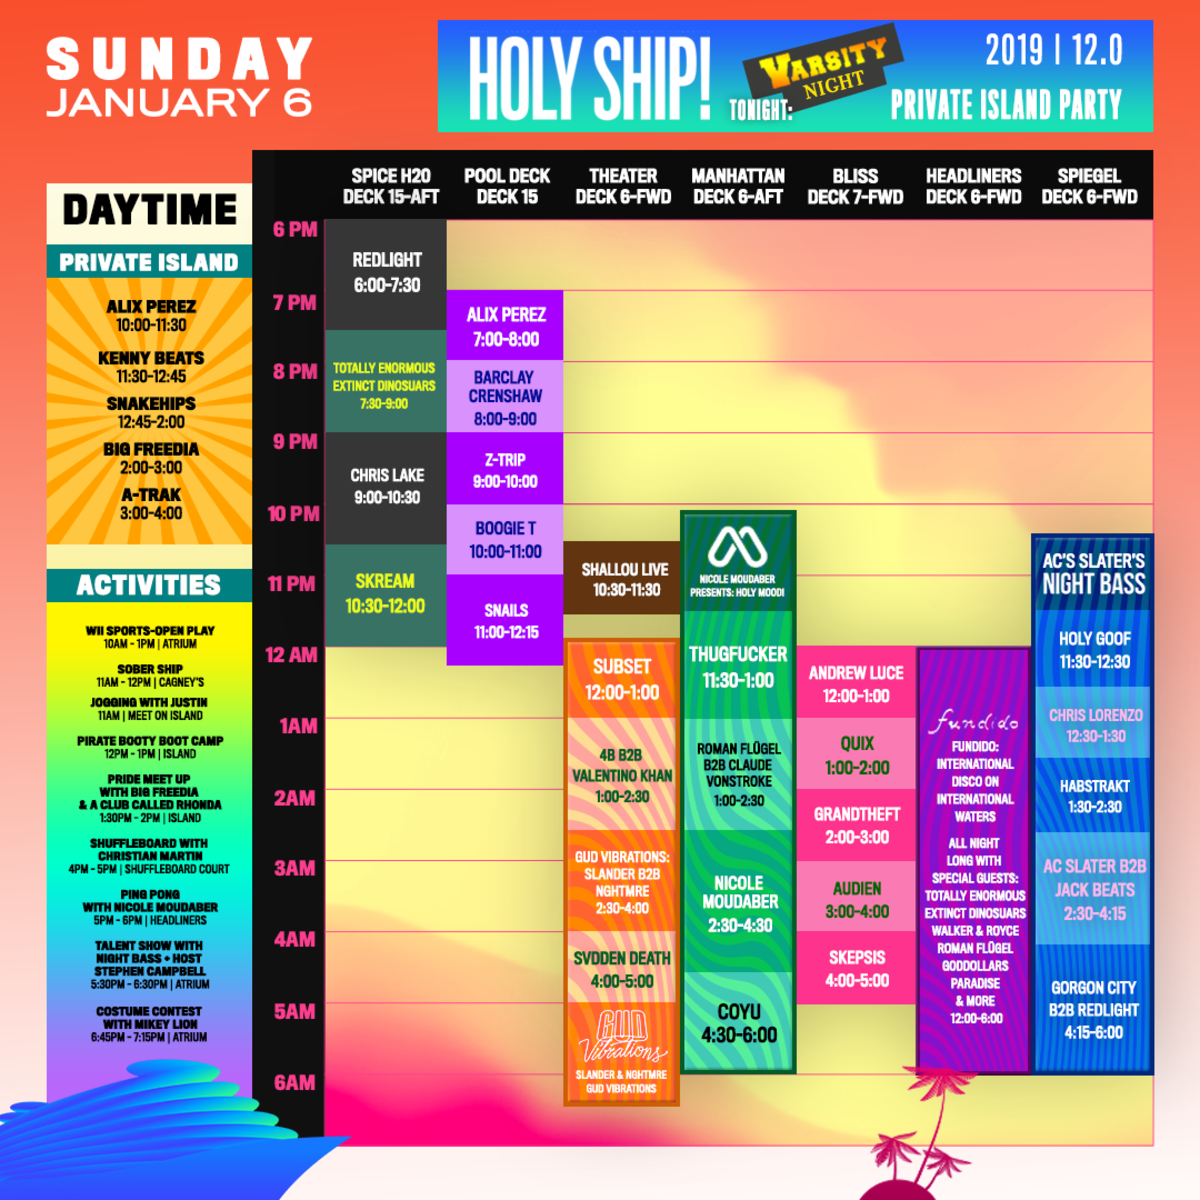 holy_ship_2019_lu_set_times_social_assets_day_2_12.0_1080x1080_r02